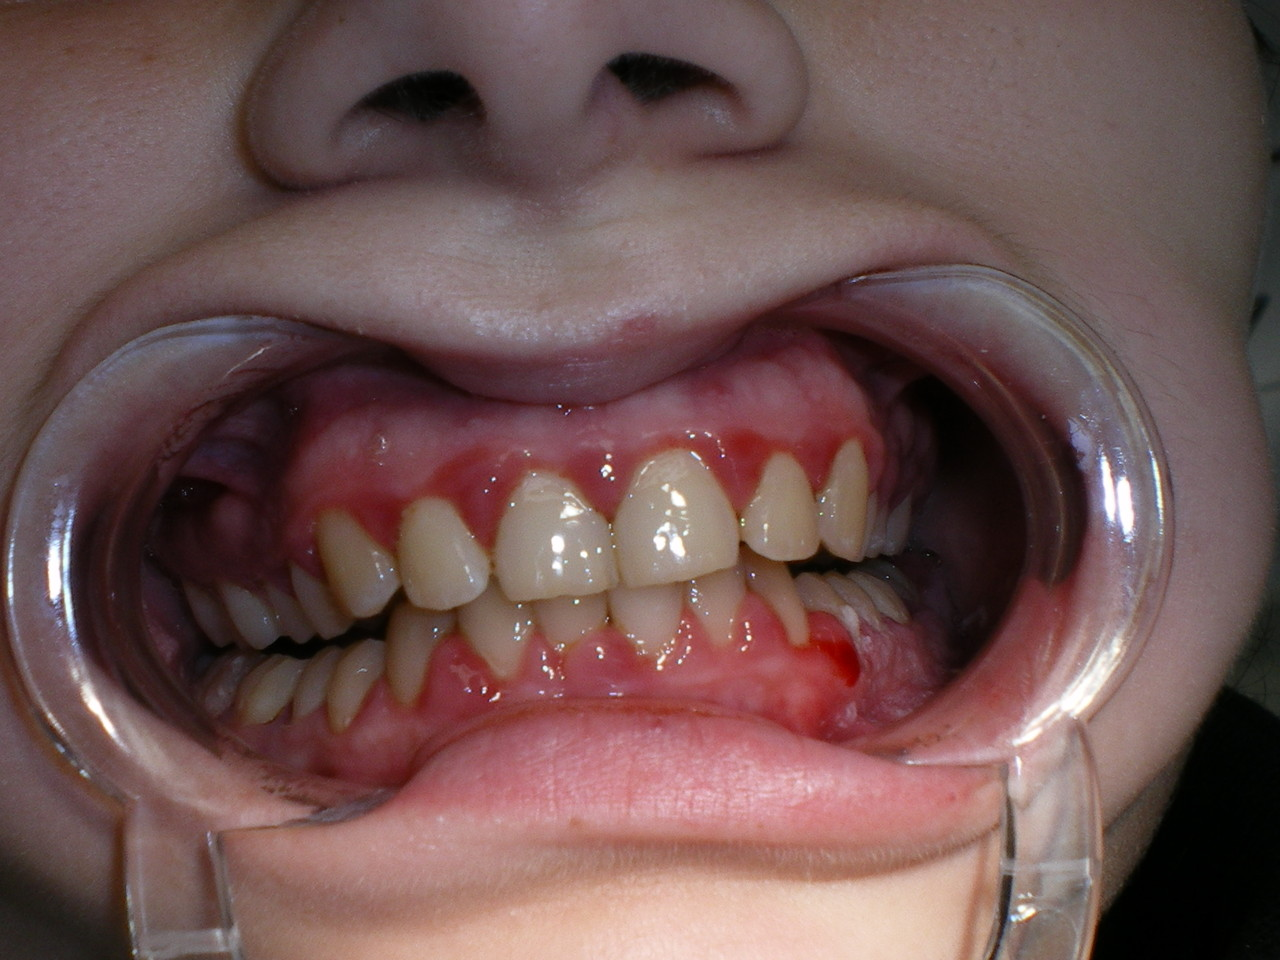 do some dentists recommend deep cleaning to make money